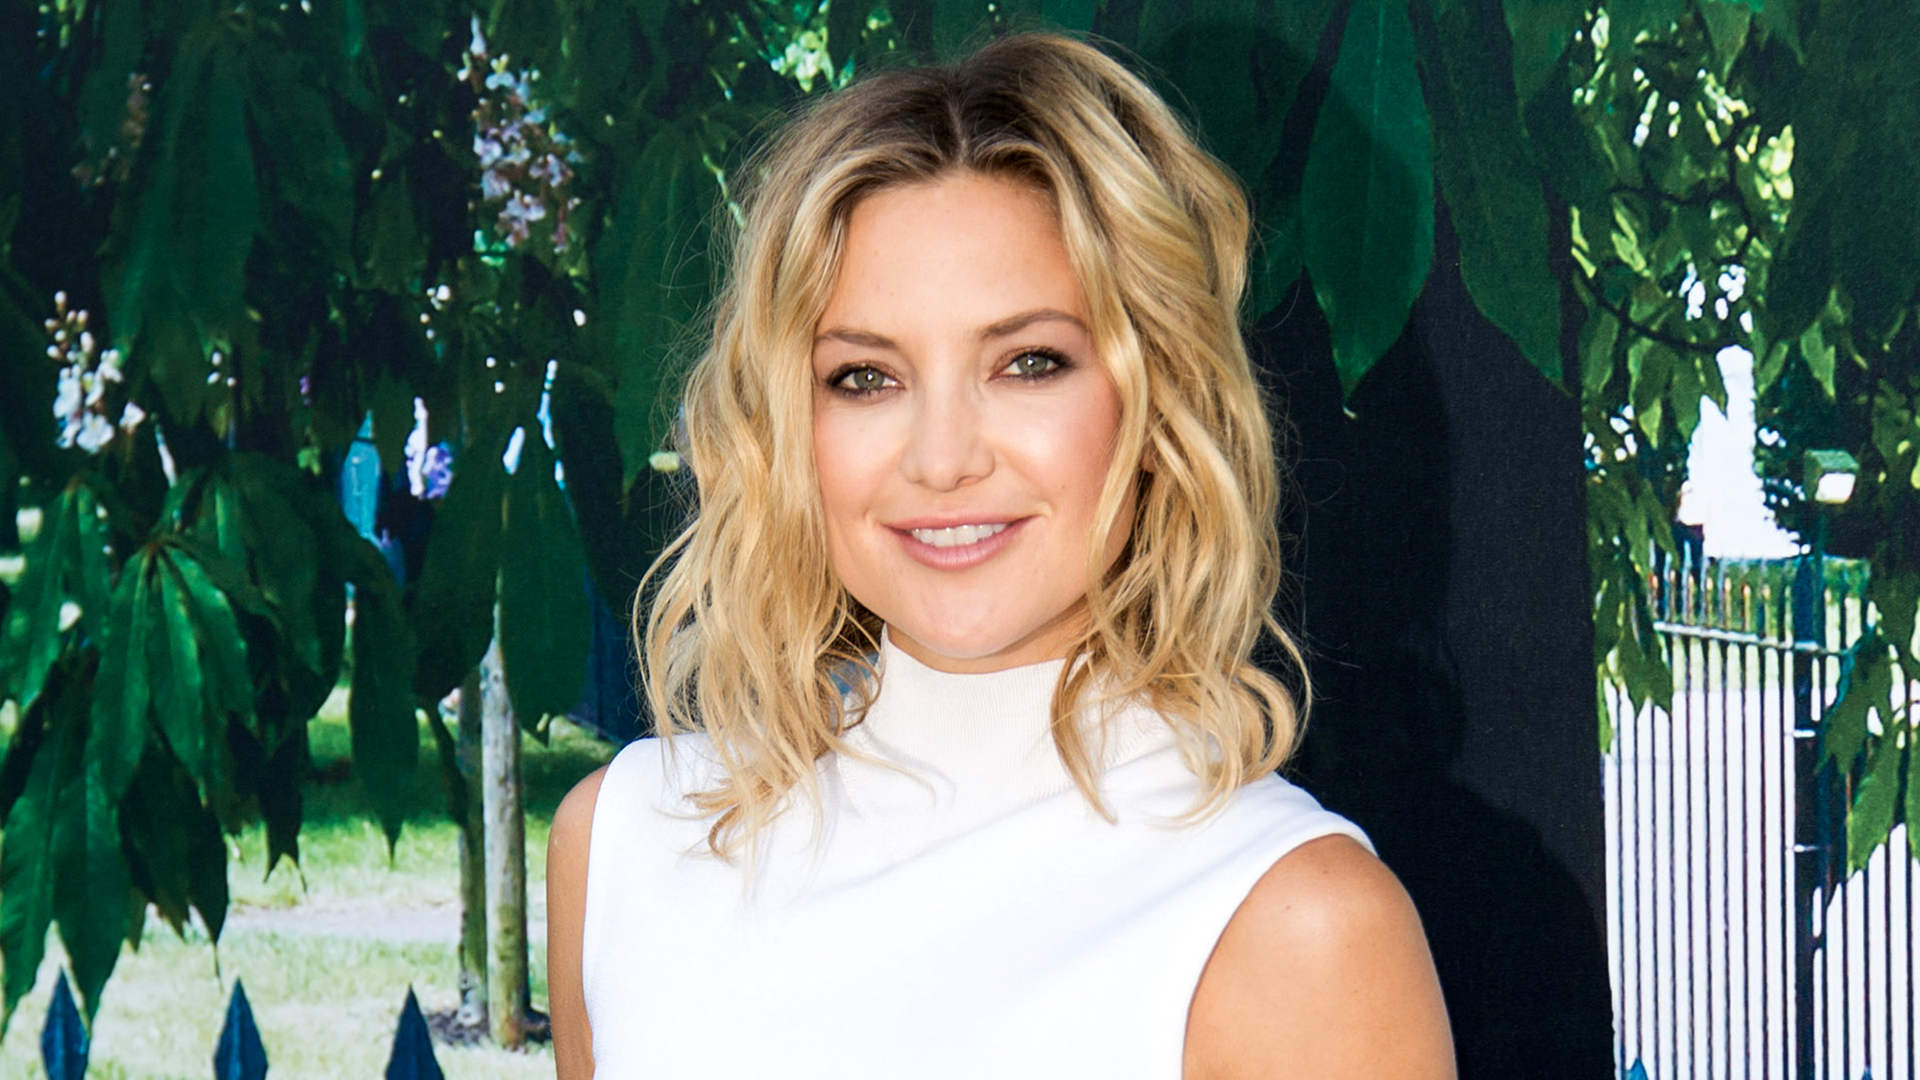 Pleasing Keep Your Cool With These Simple No Heat Summer Hairstyles Today Com Short Hairstyles Gunalazisus